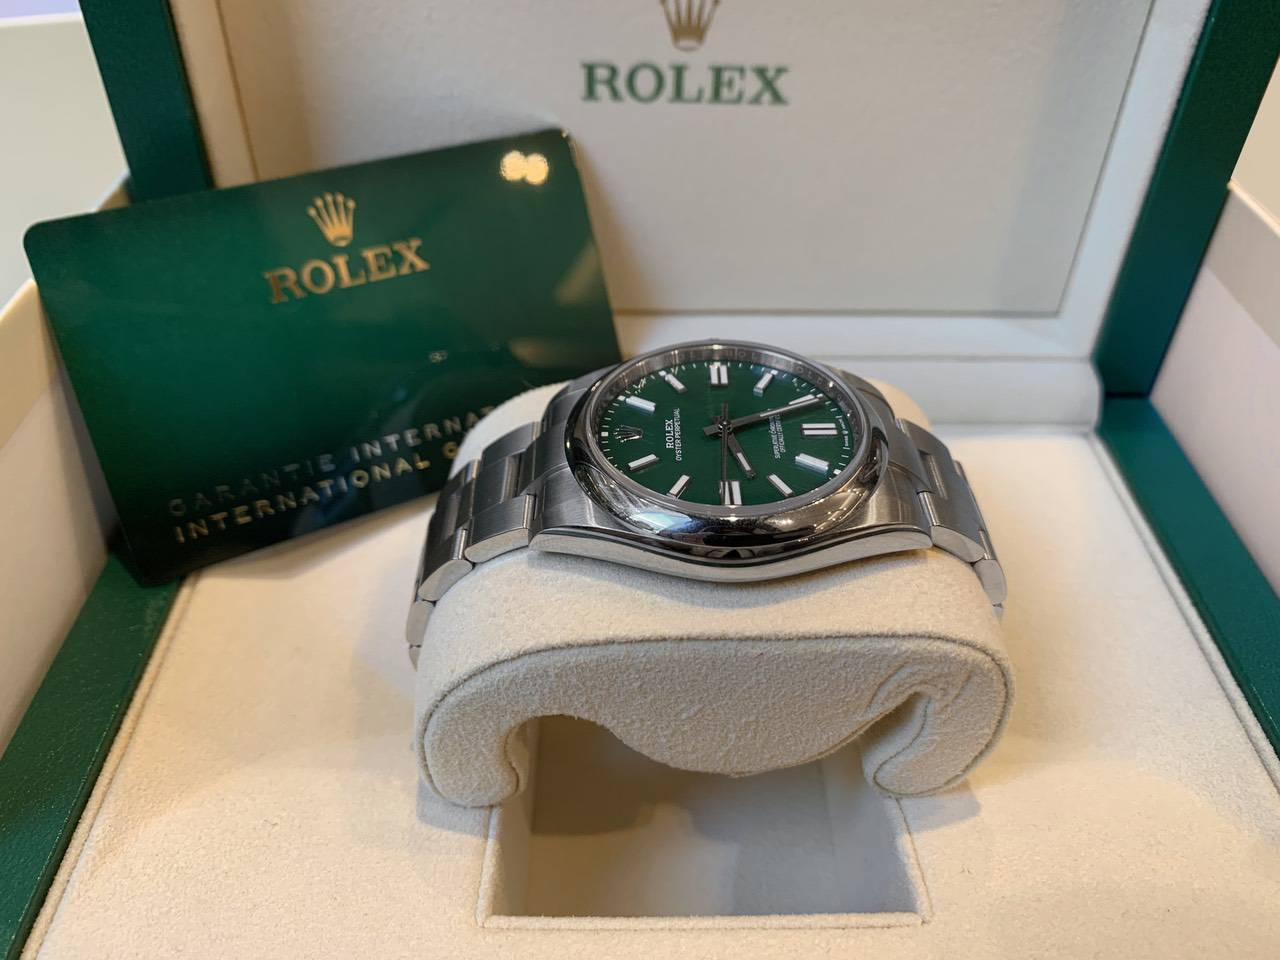 Rolex-Oyster-Perpetual-Green-124300-6